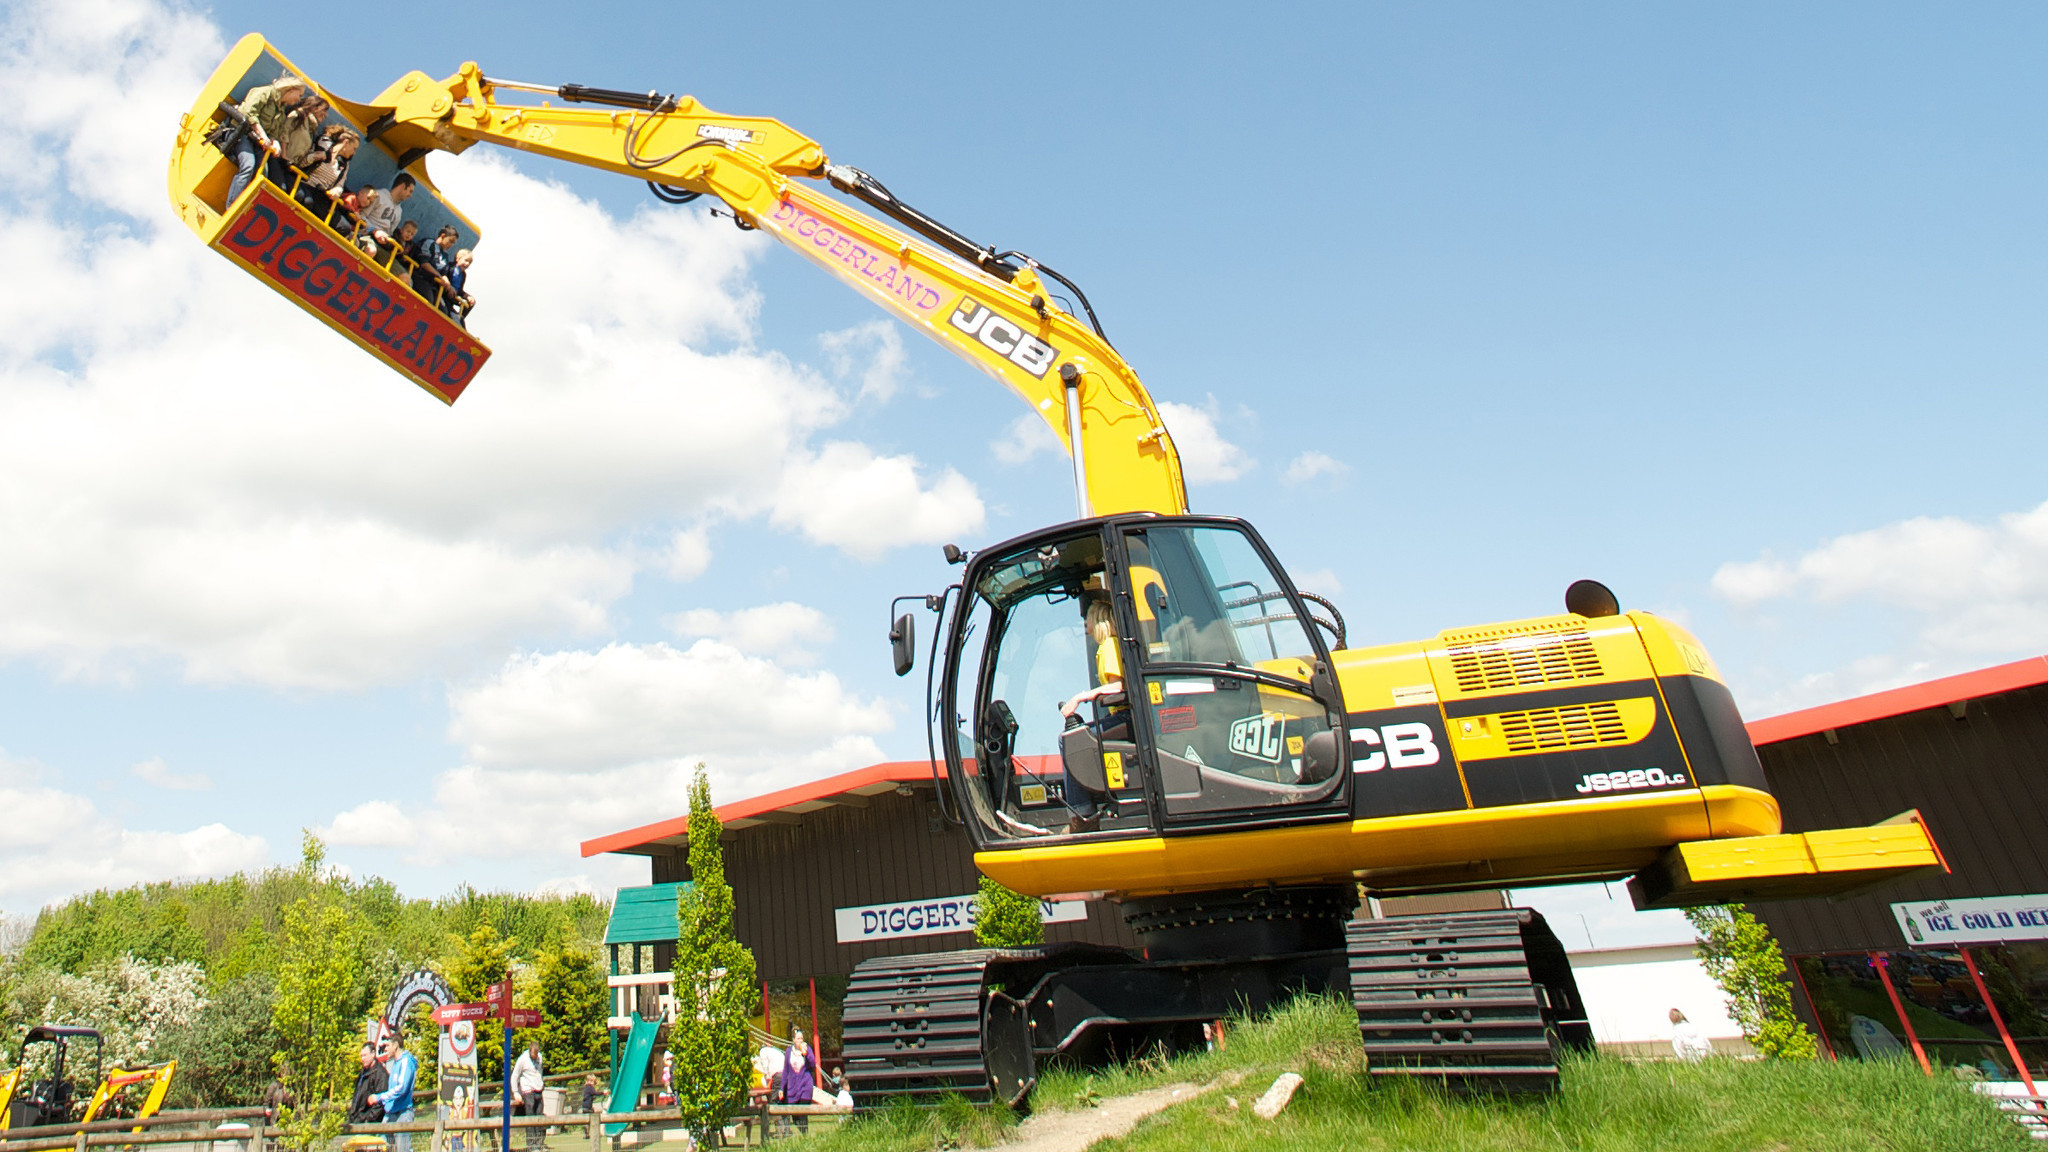 diggerland amusement park lets kids operate construction equipment